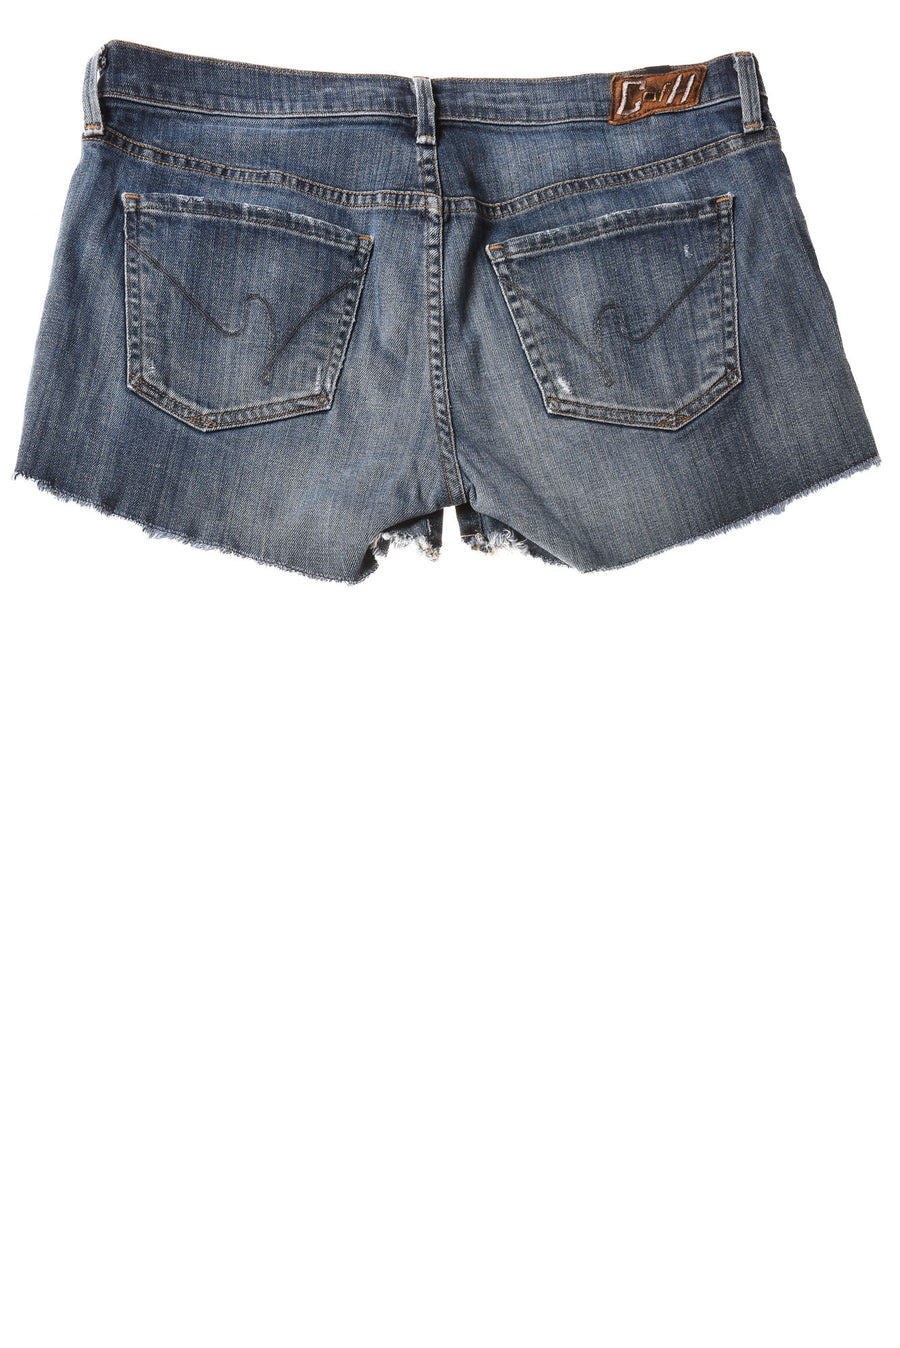 Women's Shorts By Citizens Of Humanity